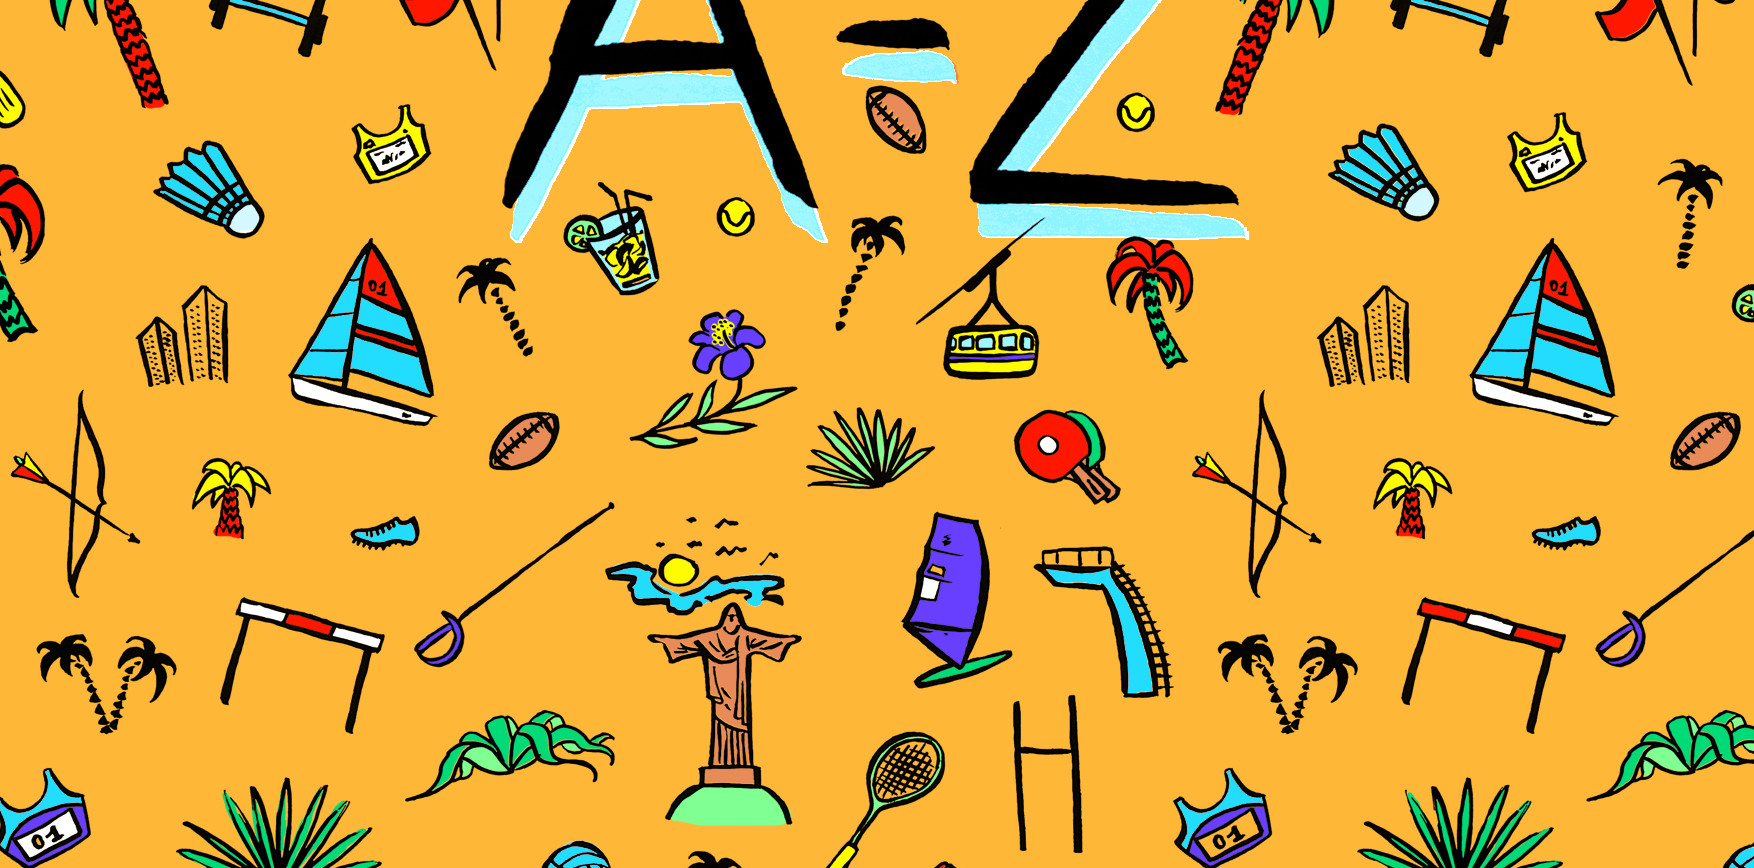 The Olympics A to Z